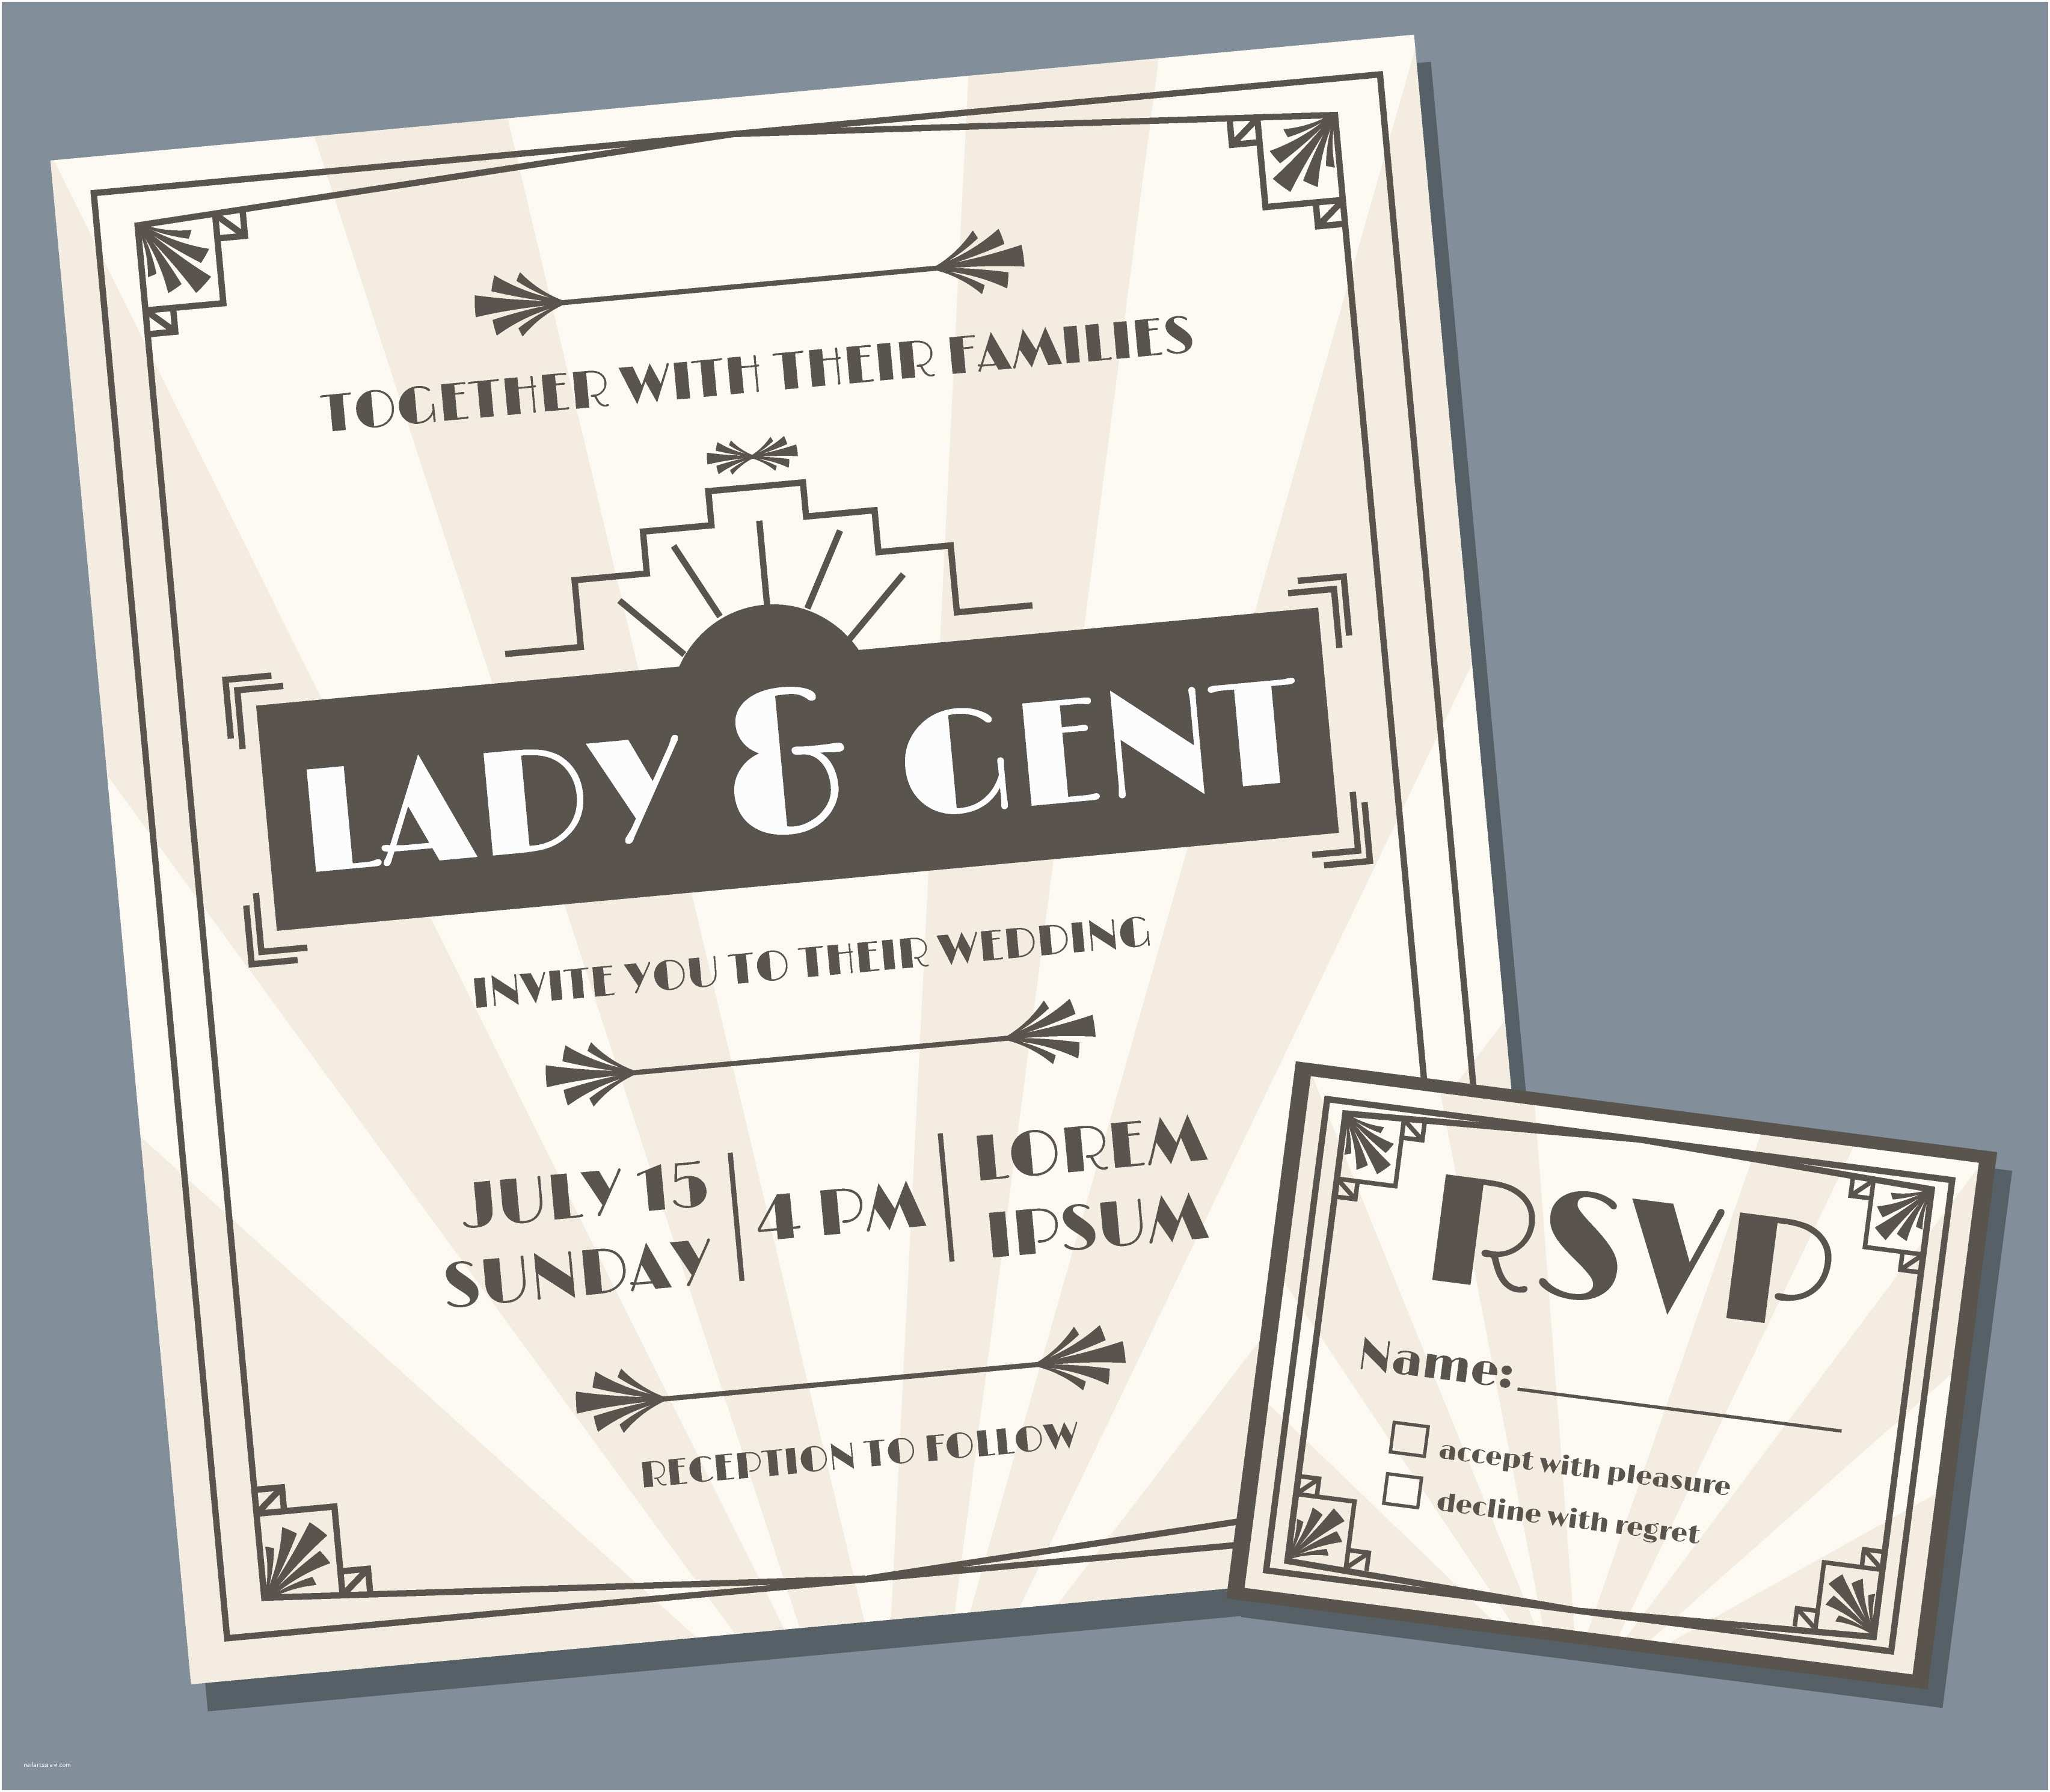 Art Deco Wedding Invitations Free Download Art Deco Wedding Invitation Design Vector Download Free